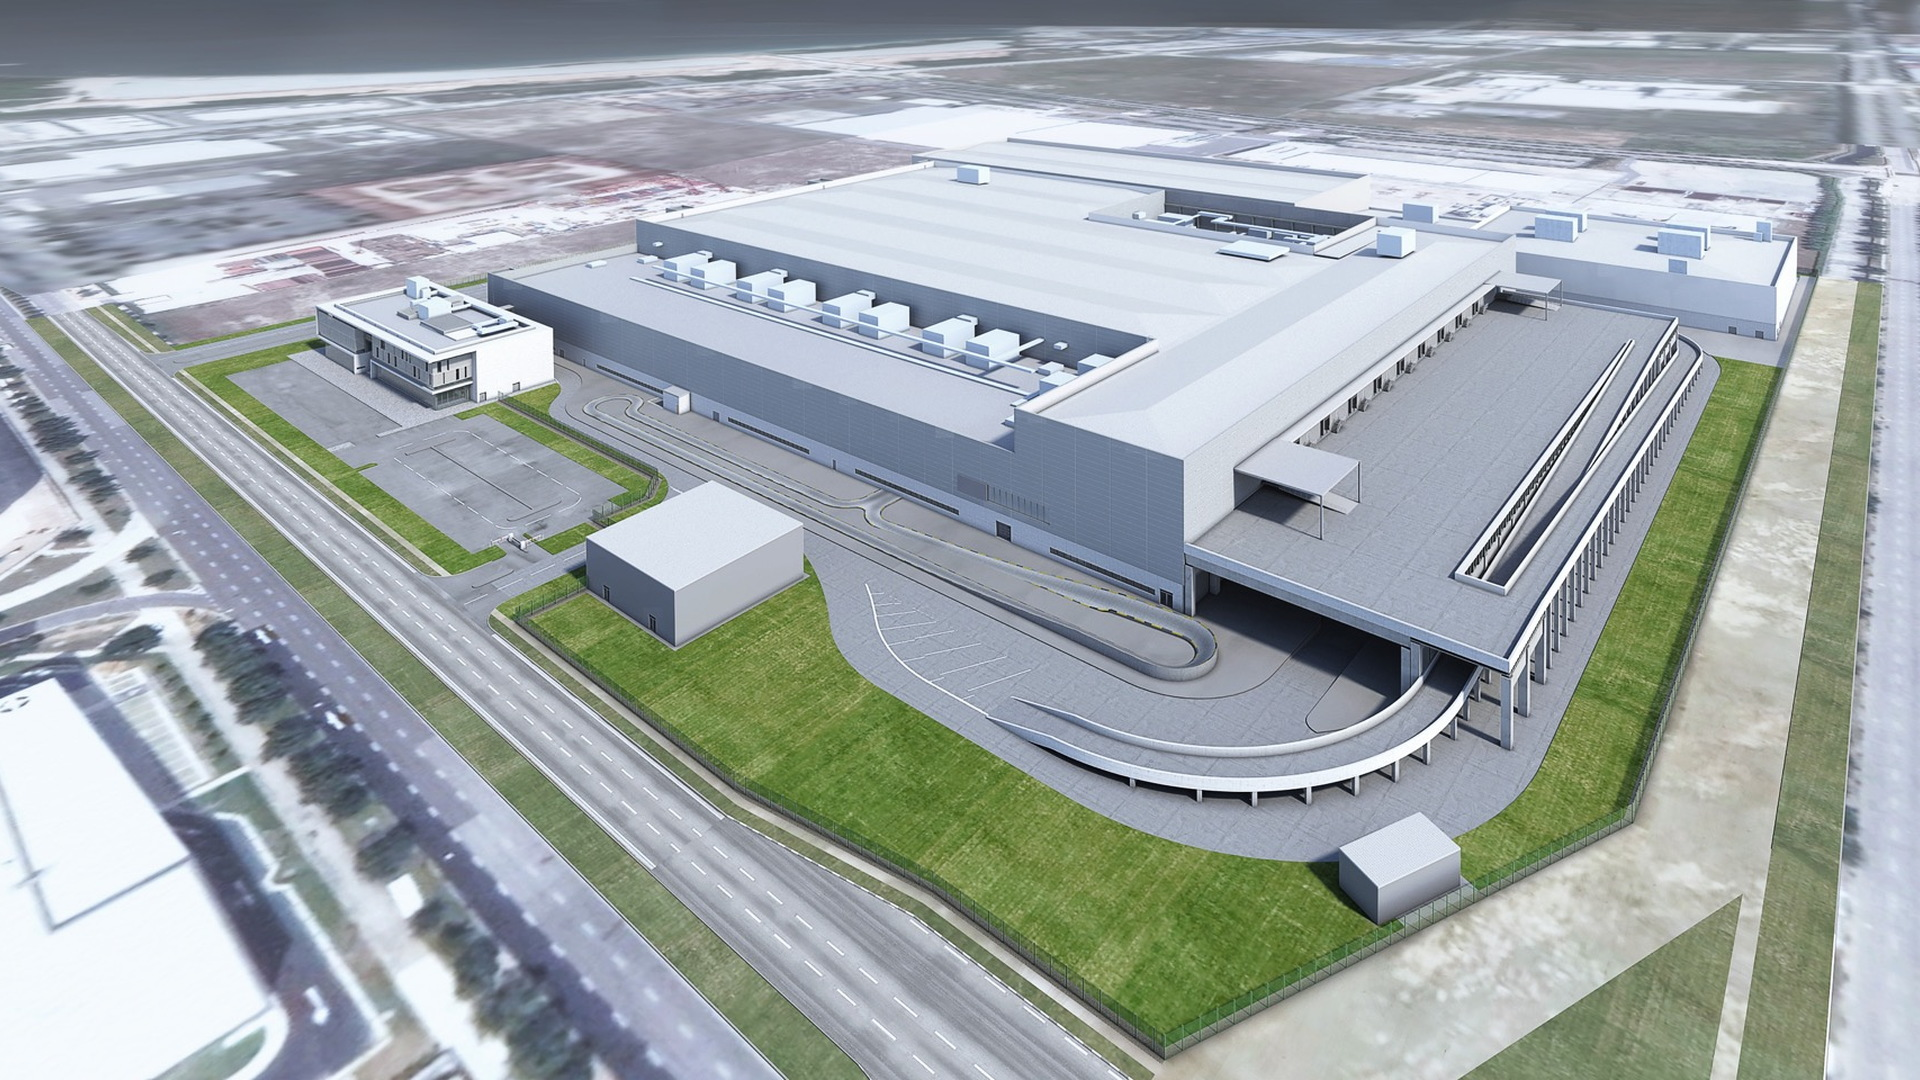 Dyson Automotive Manufacturing facility  -  Singapore  -  rendering